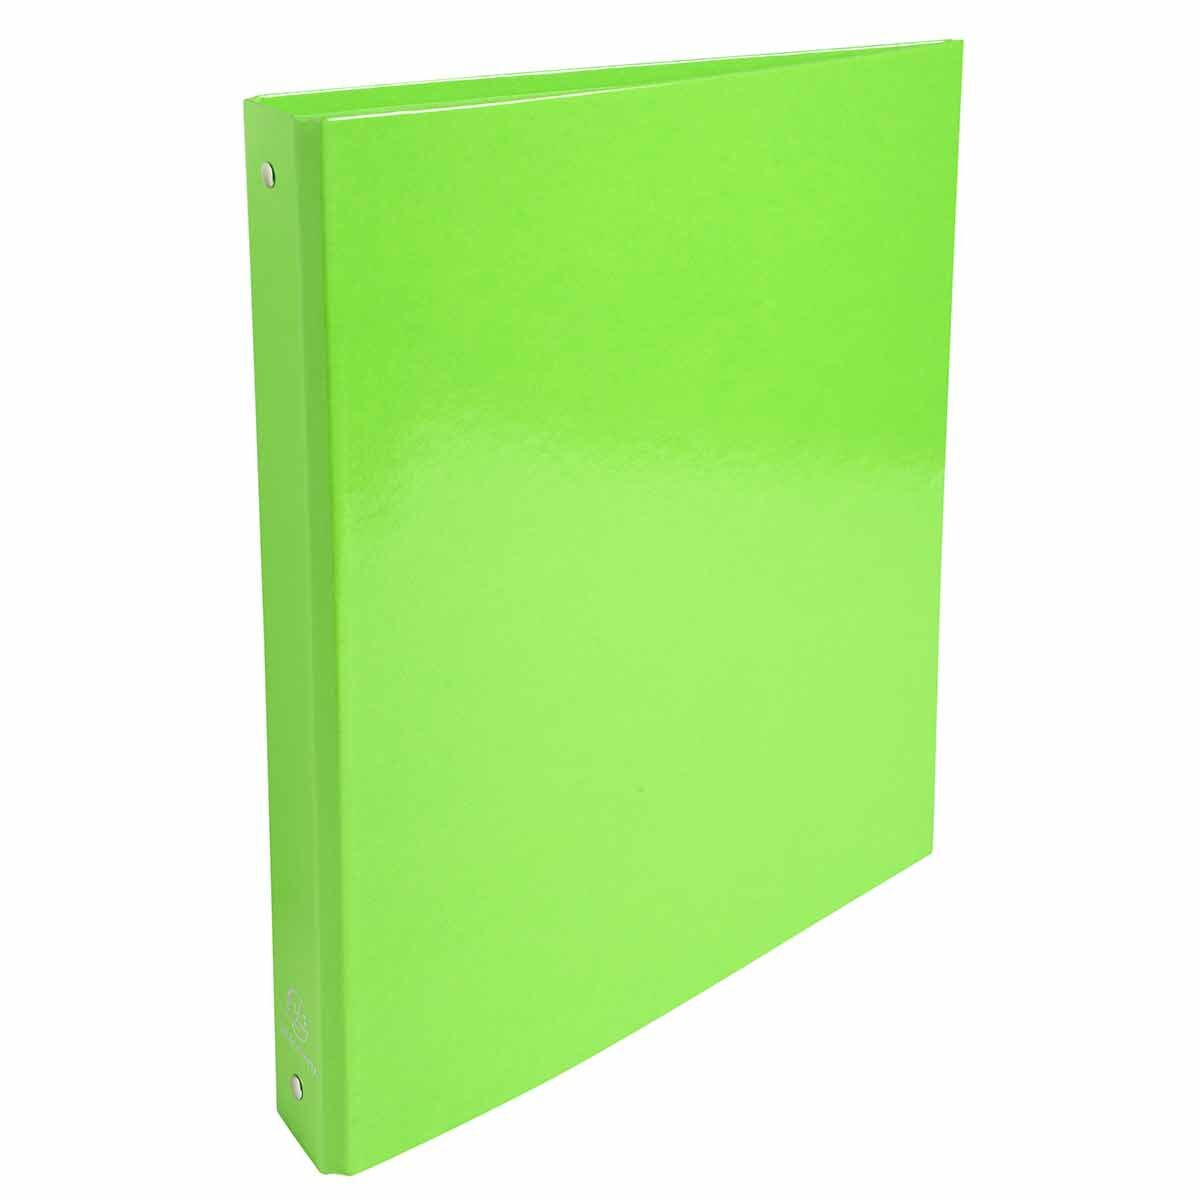 Exacompta Iderama Plastic Coated Ring Binder 4 Ring 30mm A4 Pack of 10 Lime